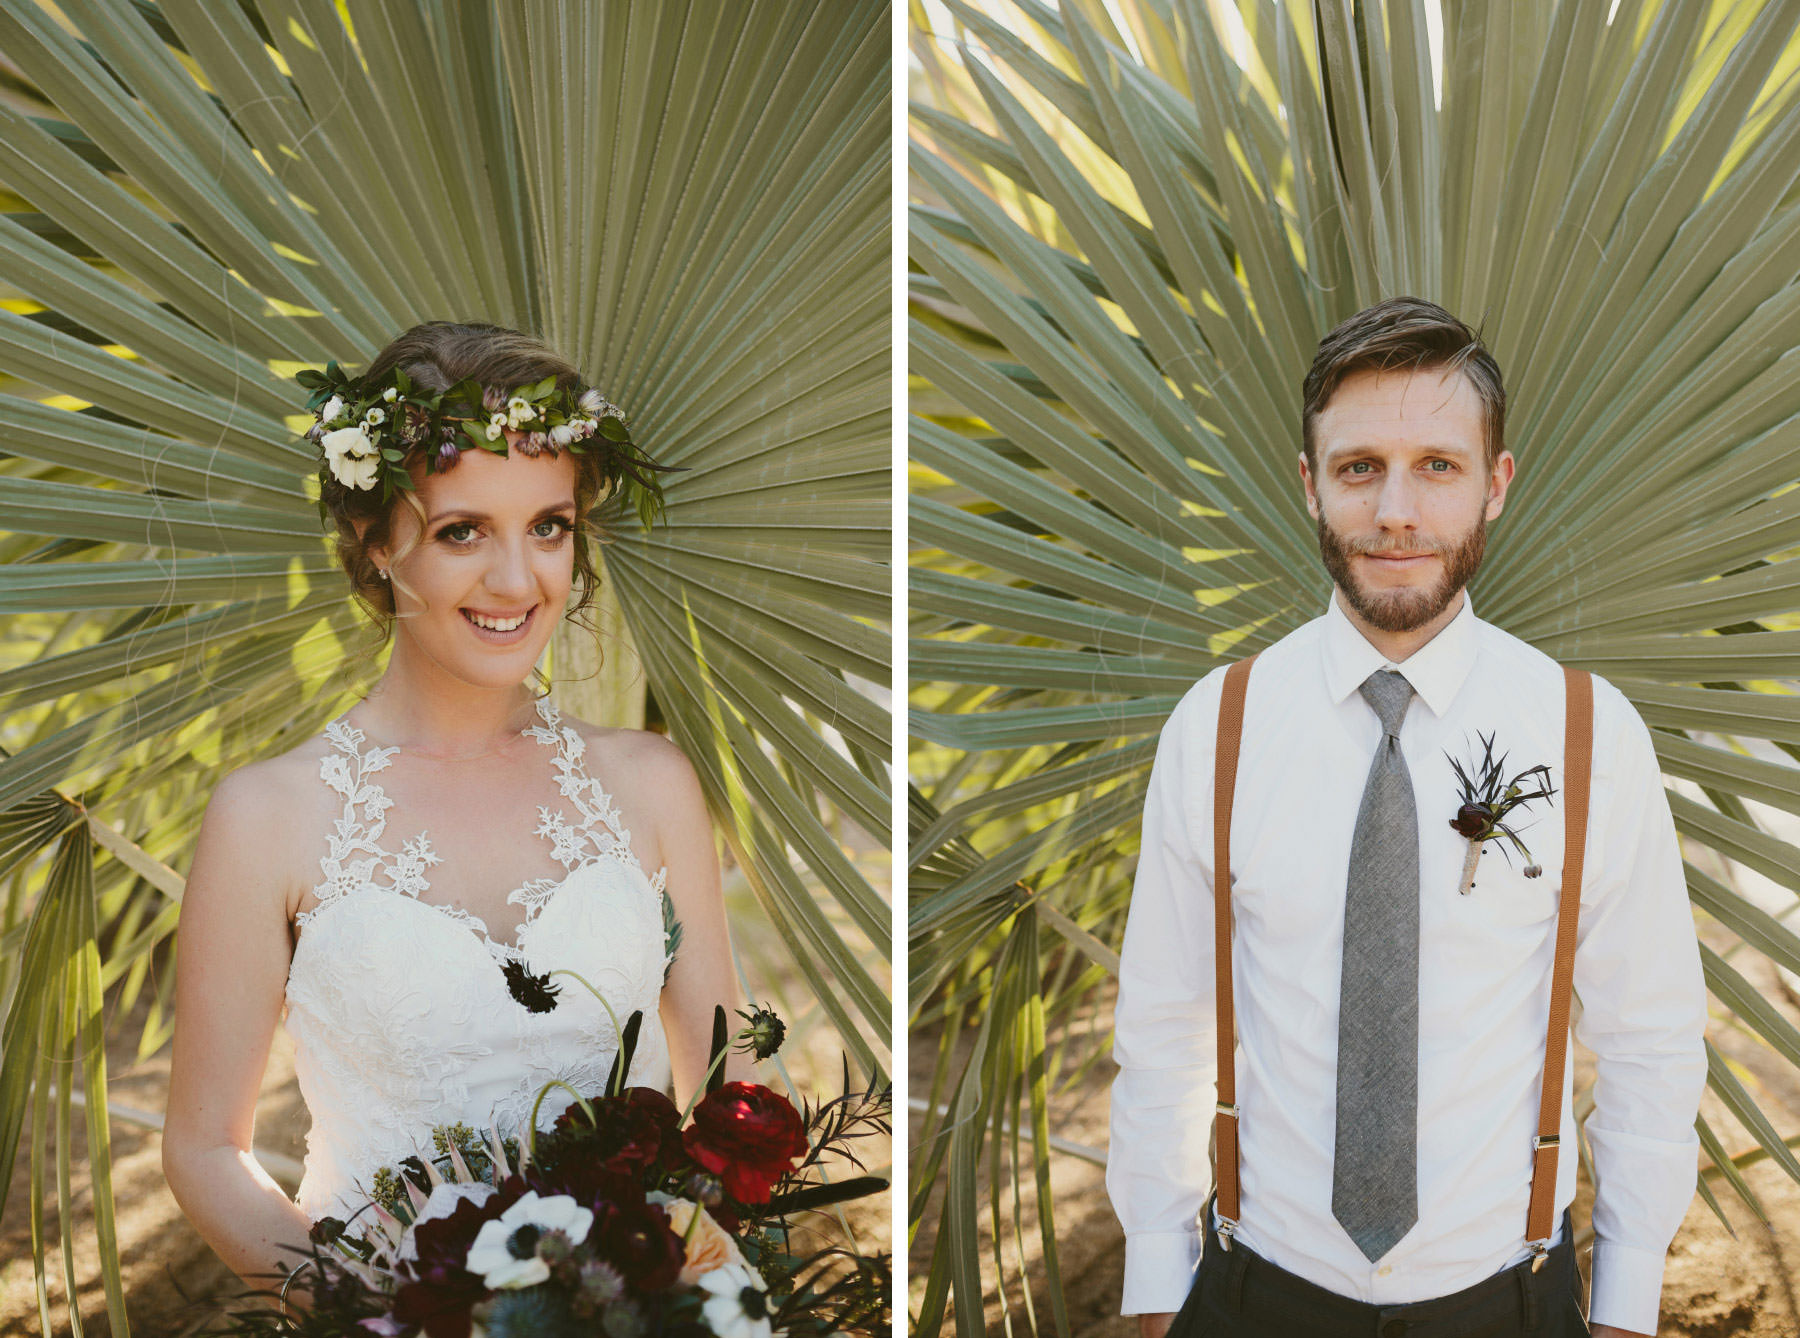 Balboa cactus garden wedding portraits